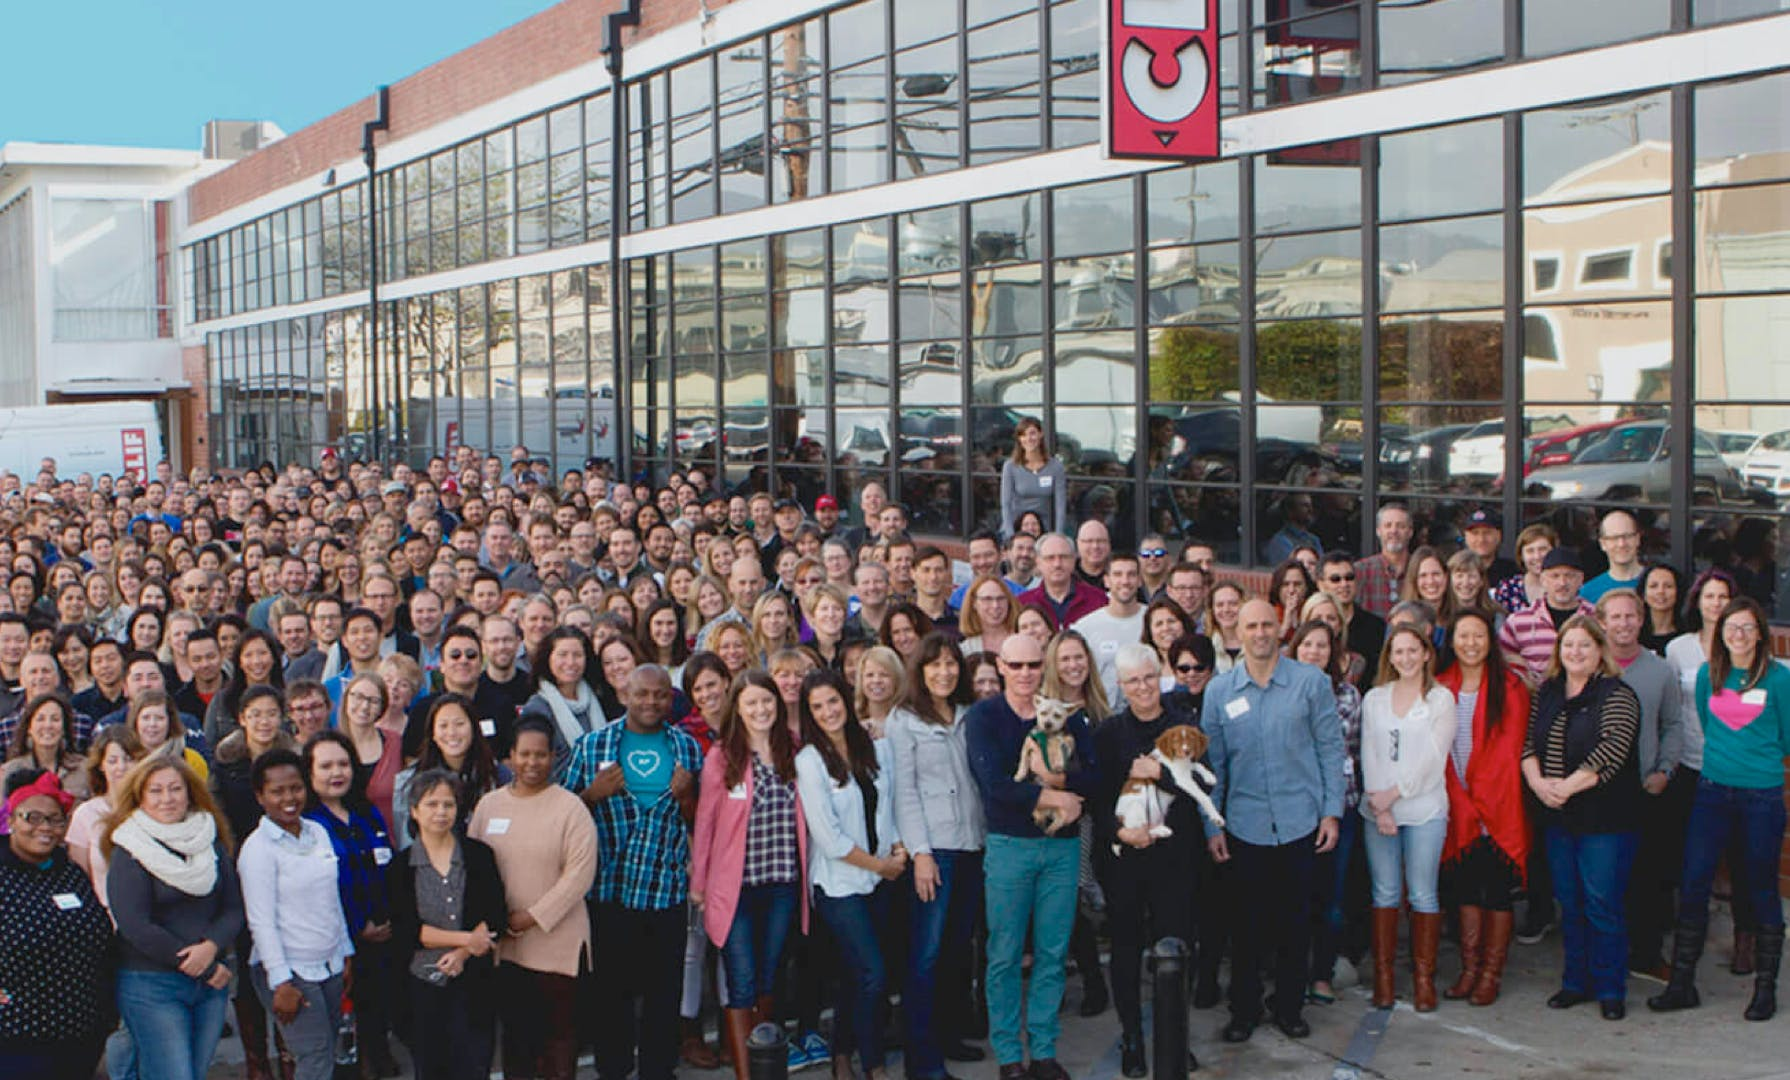 Clif Employees gathered in front of office